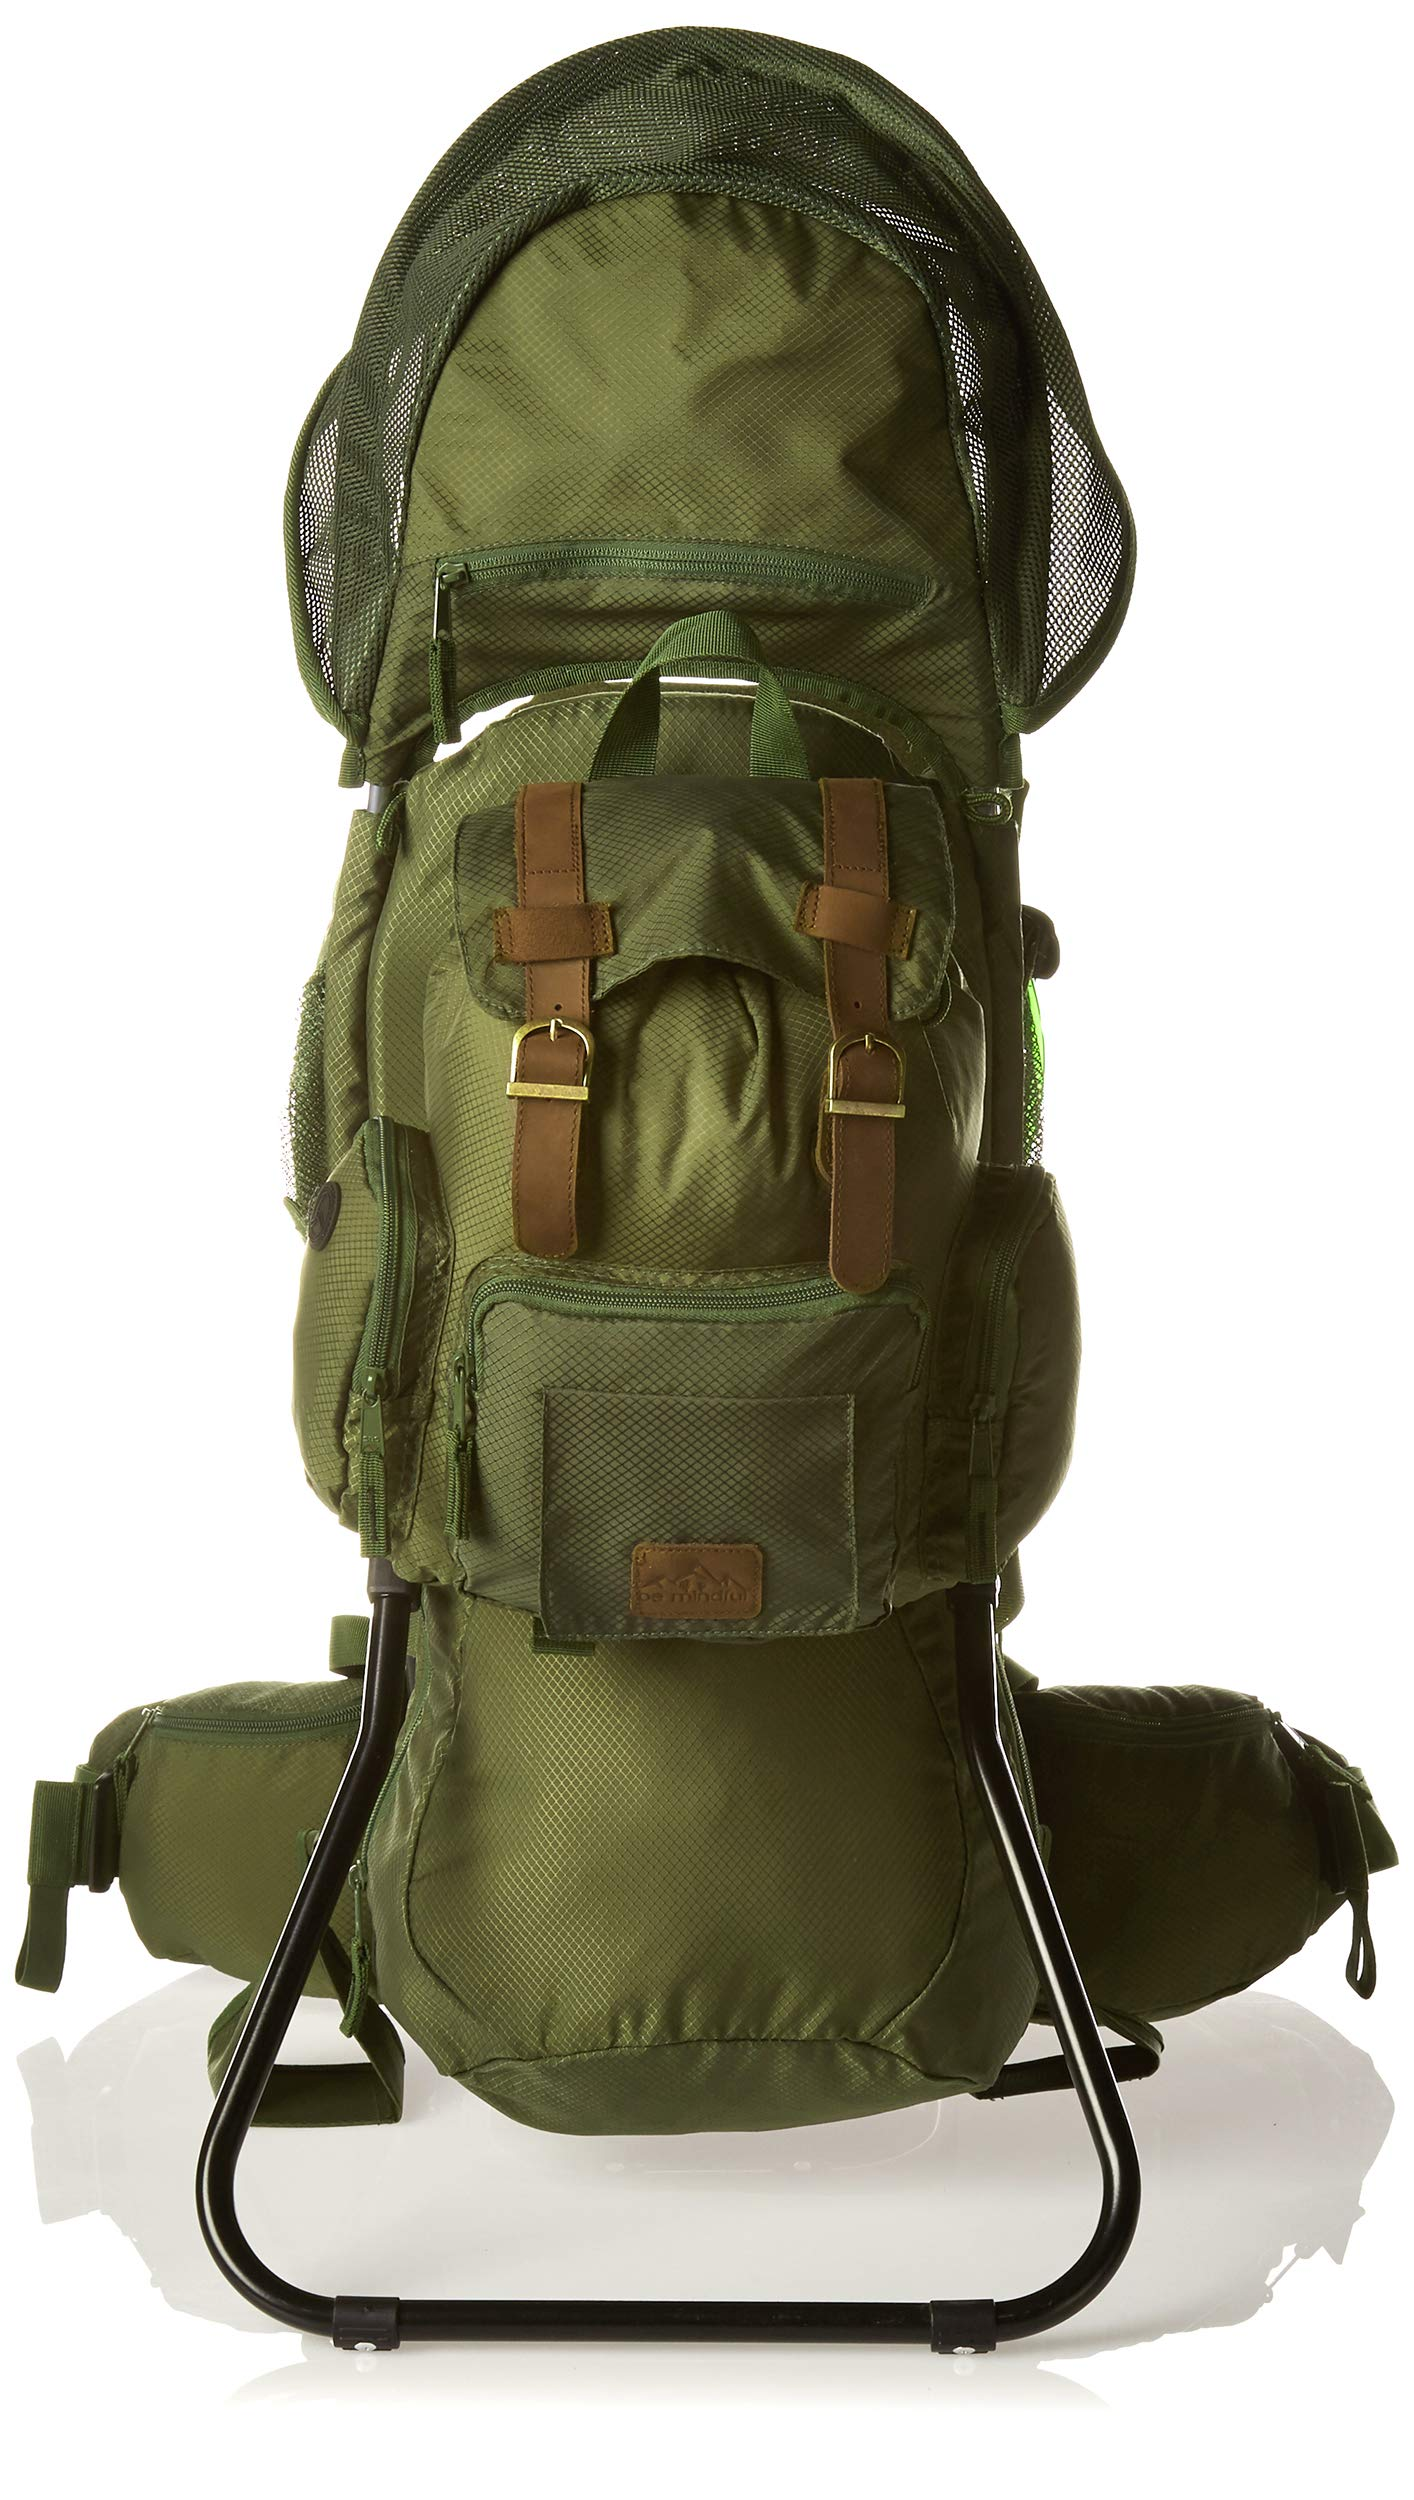 Be Mindful Retro Scout Baby Carrier Backpack in Jungle Green